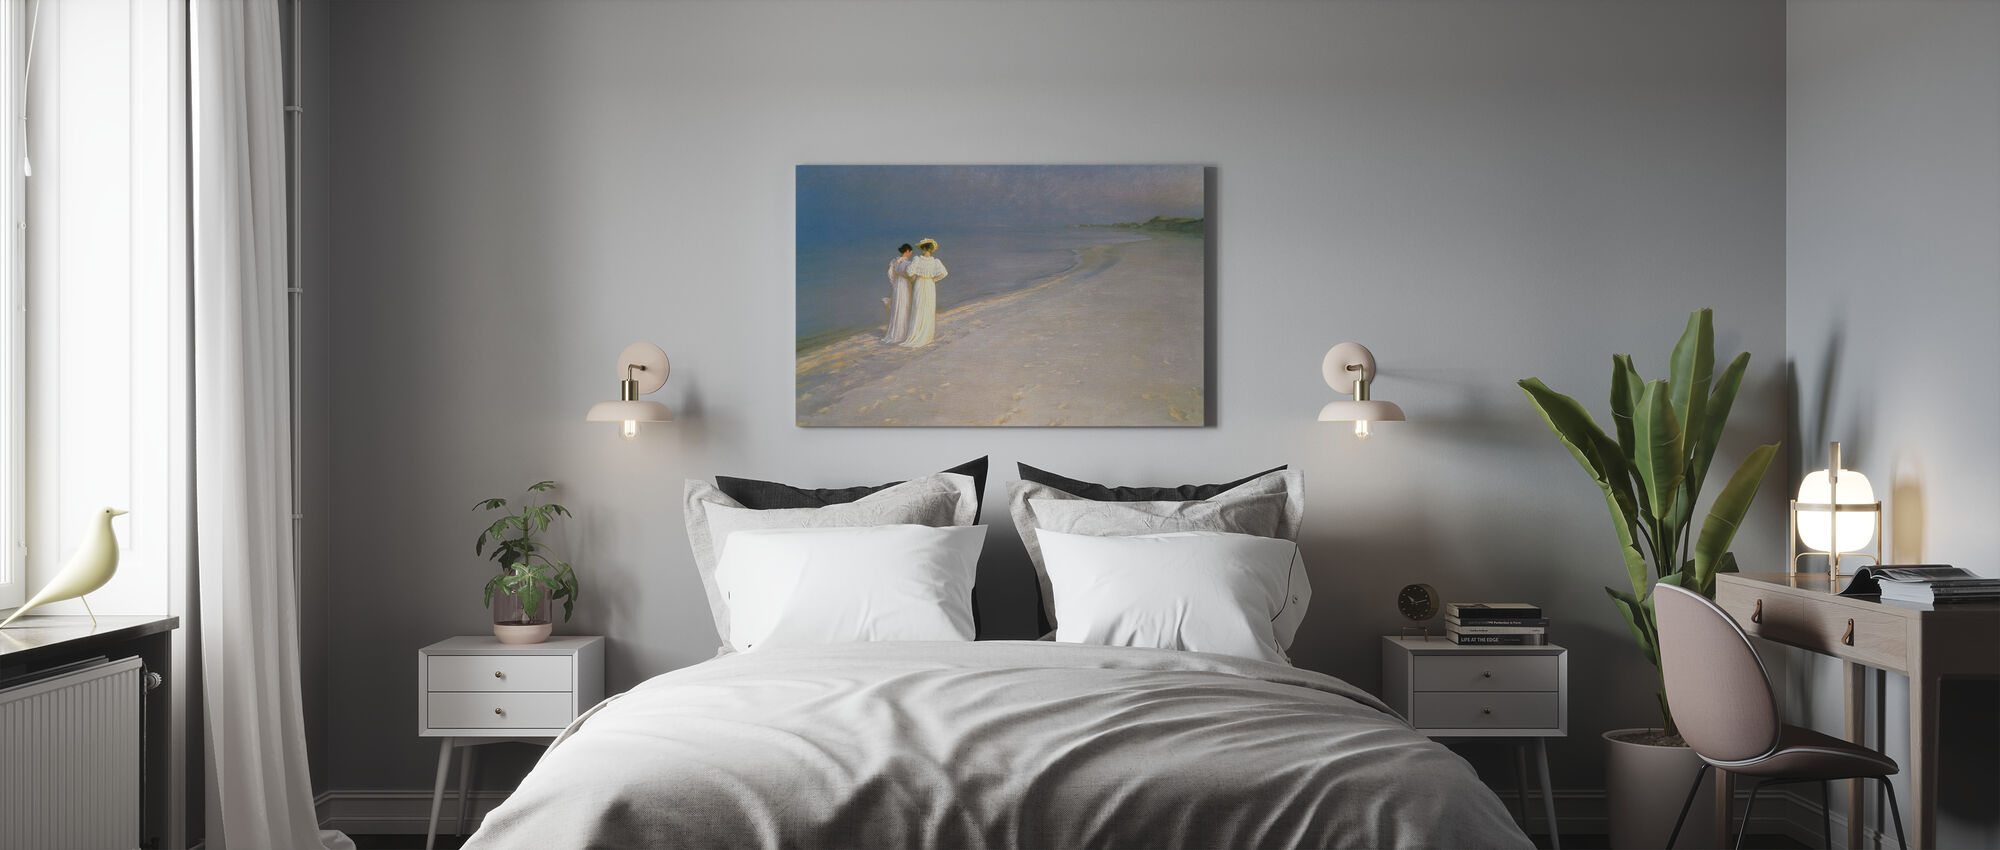 Summer Evening on the Skagen Southern Beach with Anna Ancher and Marie Kroyer - Peder Severin Kroyer - Canvas print - Bedroom